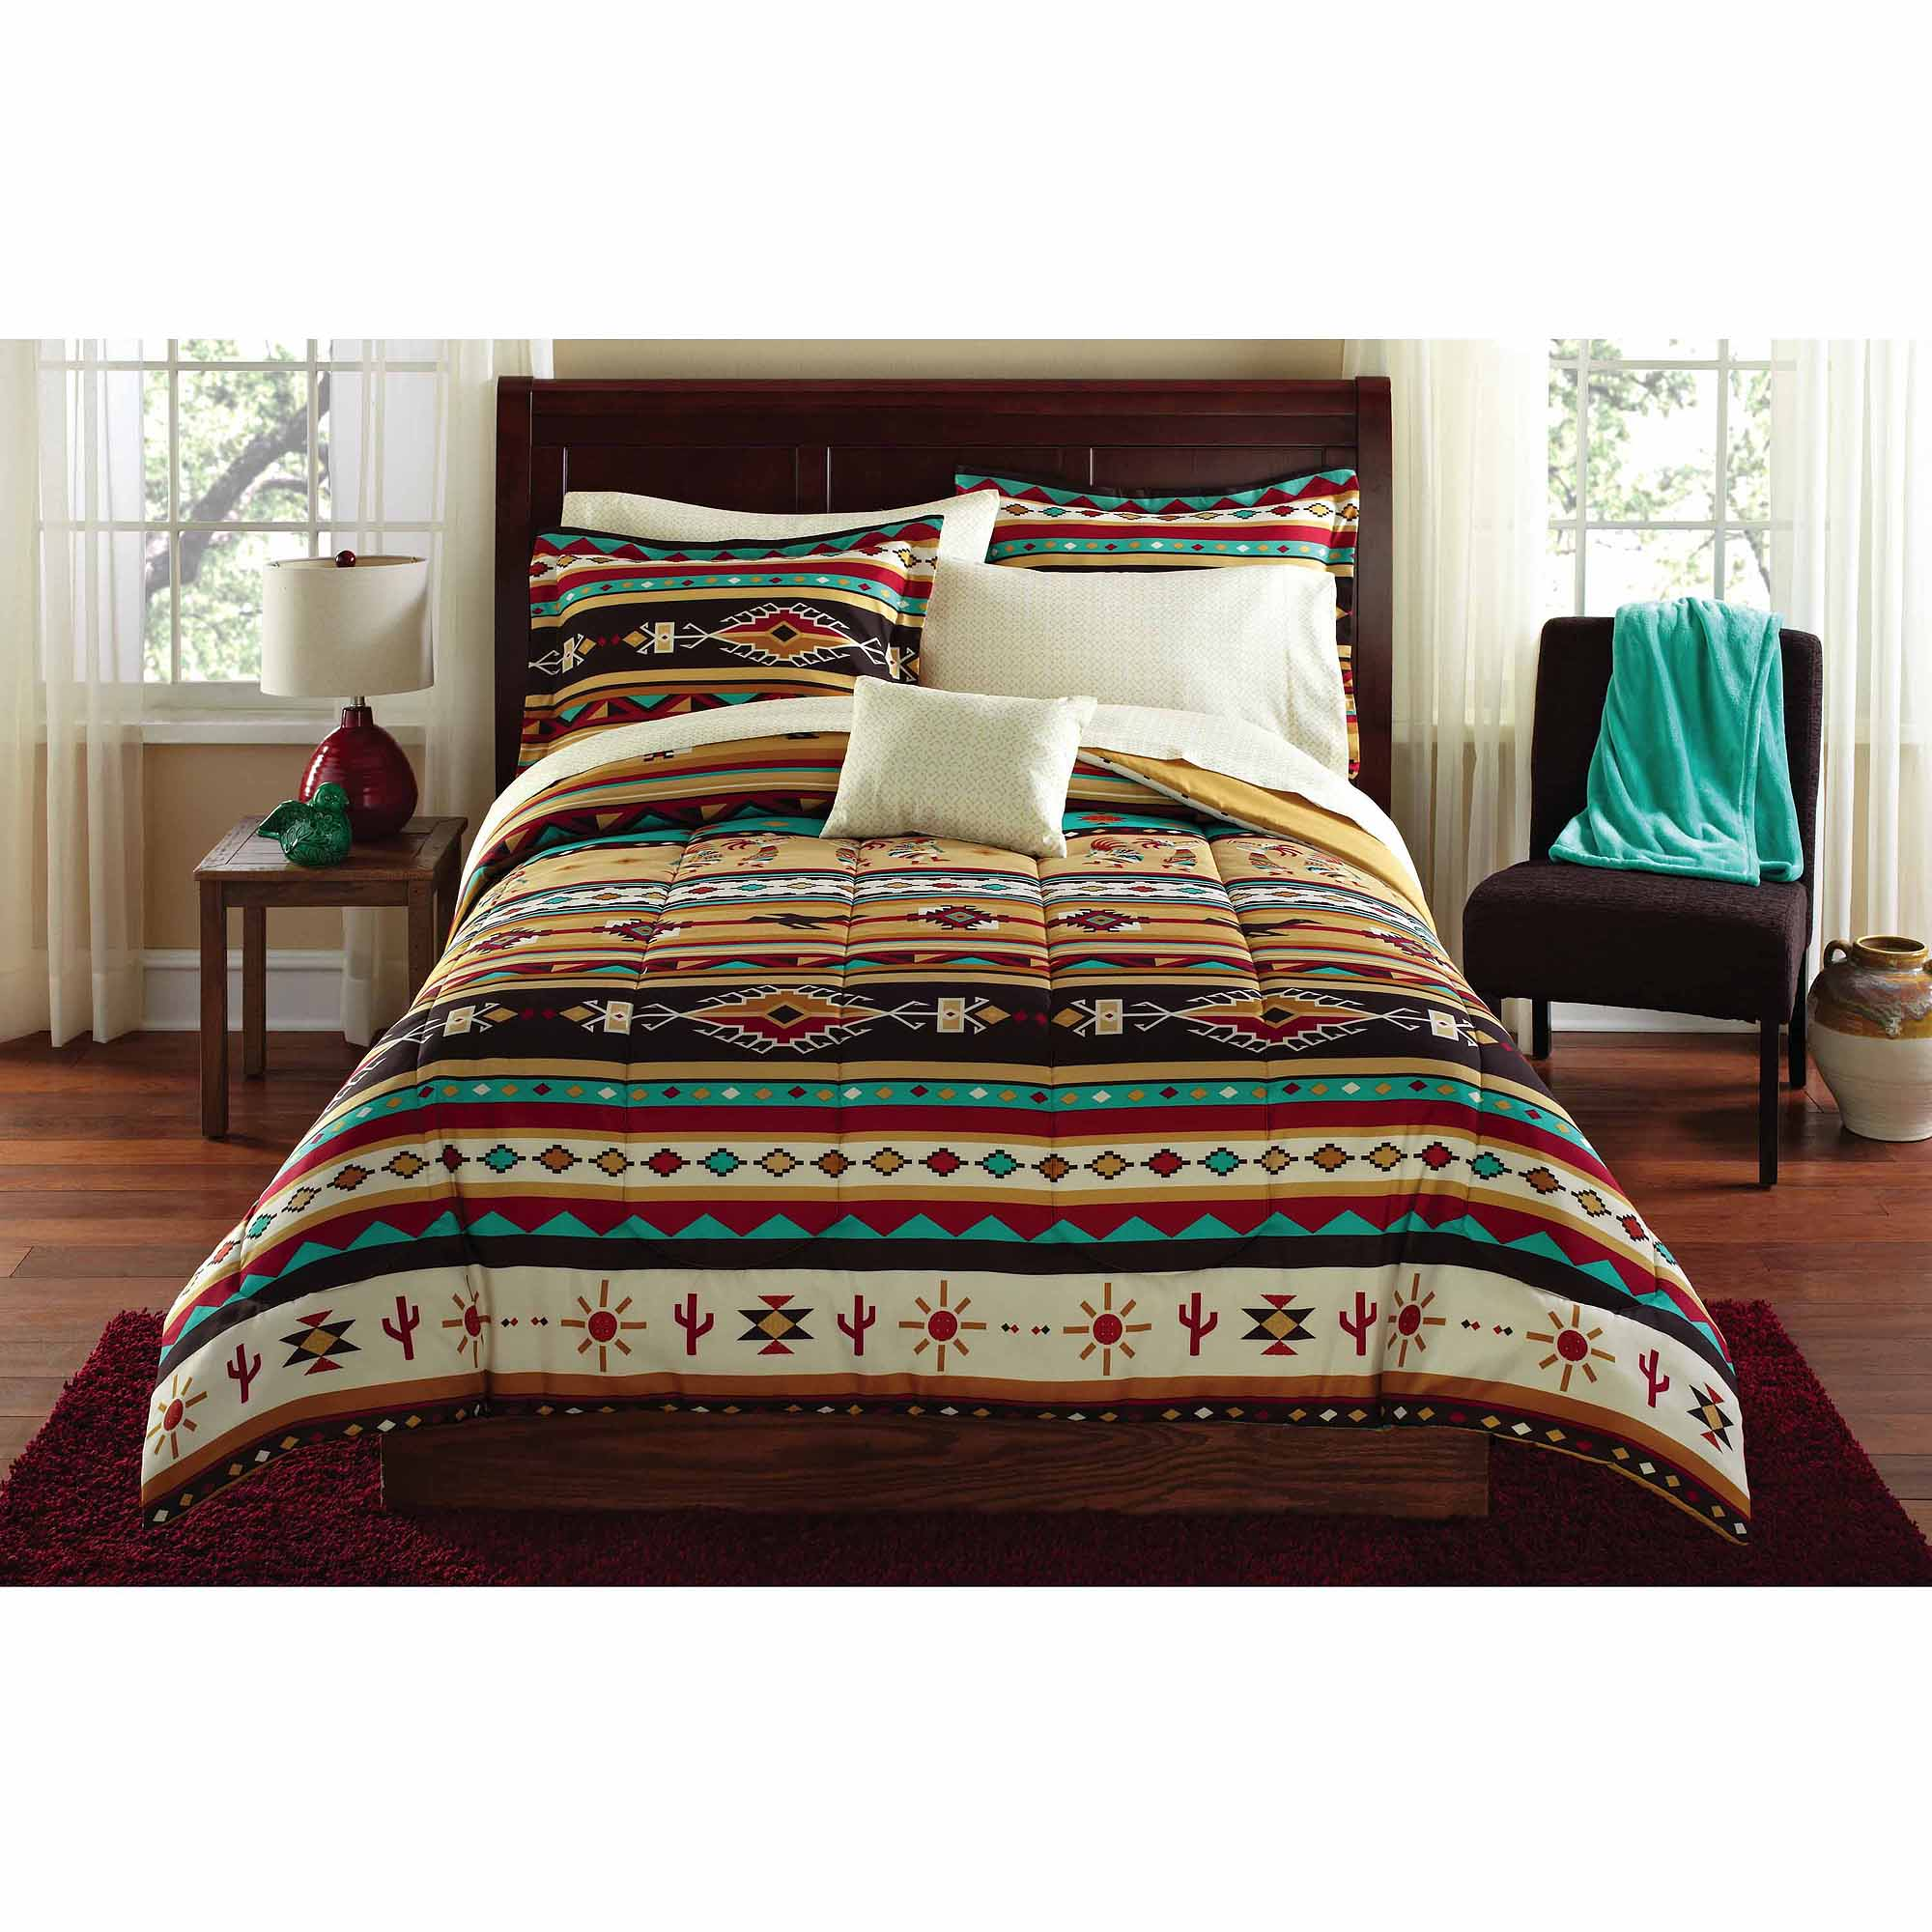 Mainstays Kokopelli Bed In A Bag Coordinating Bedding Set   Walmart.com